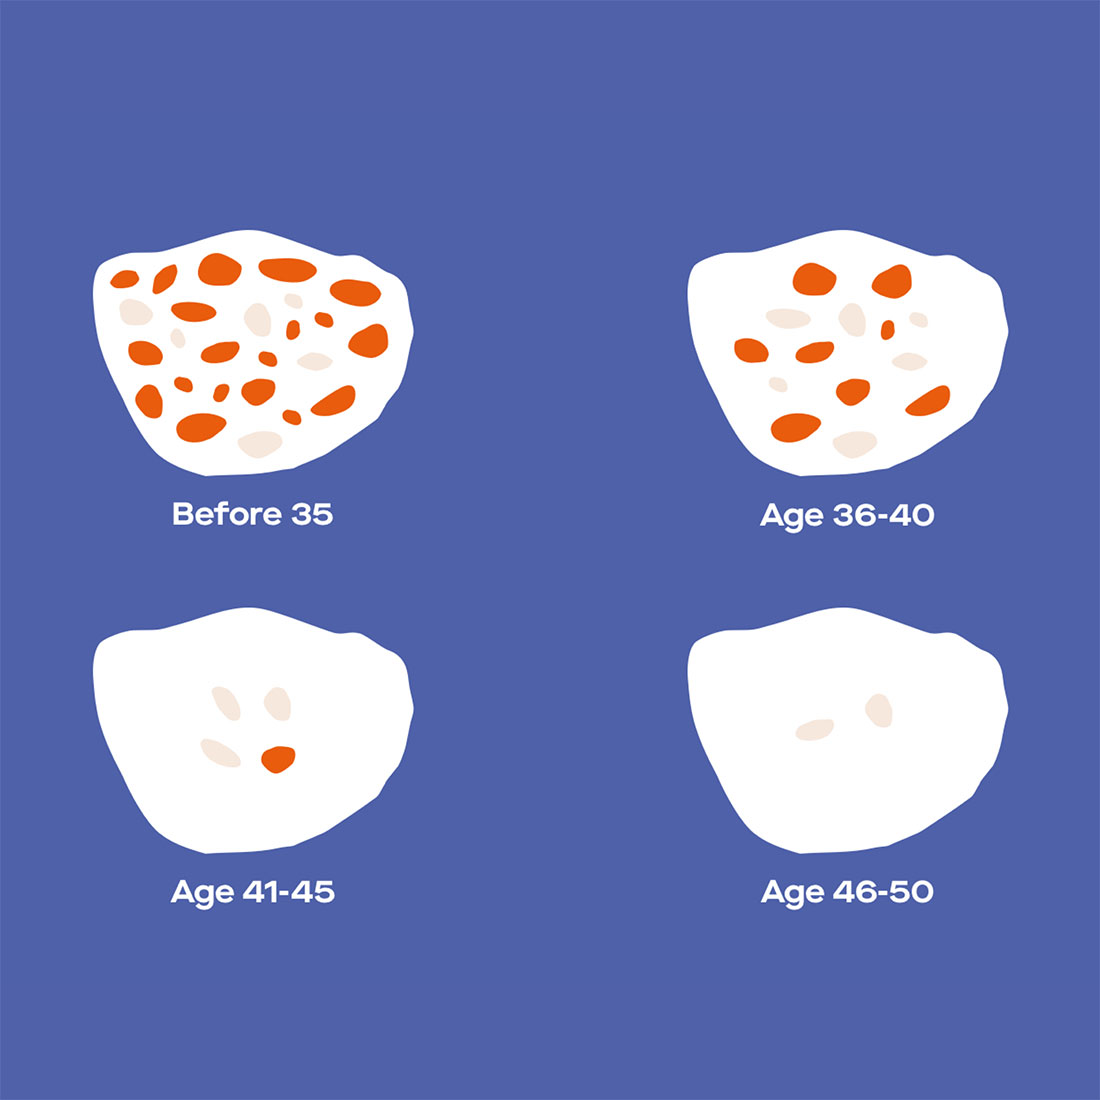 Egg quality by age